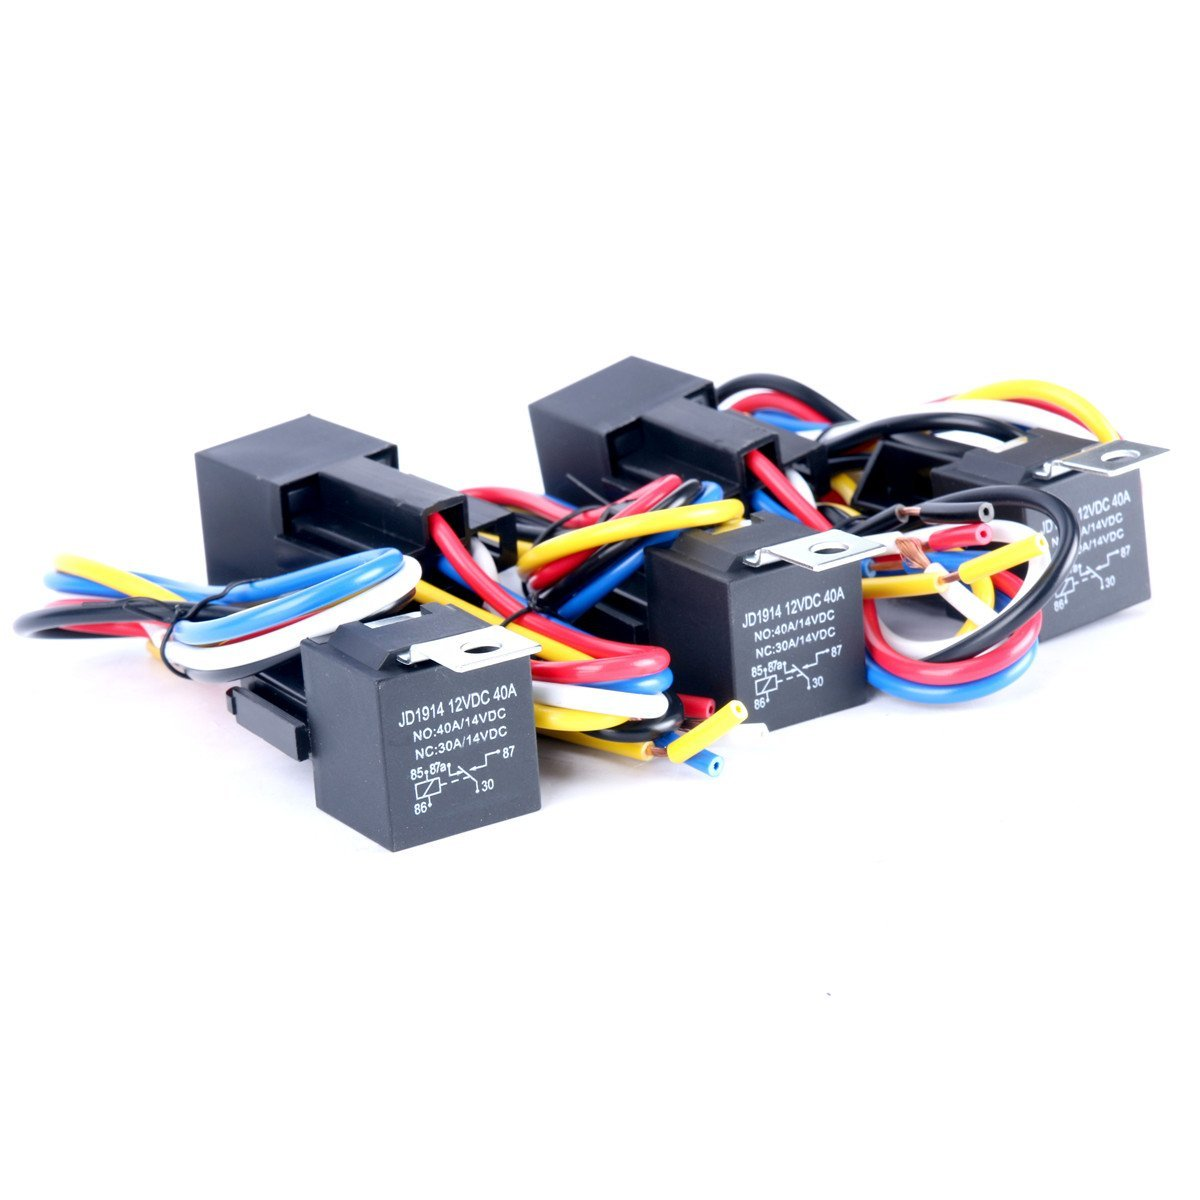 8milelake 12v 30 40 Amp 5pin Spdt Automotive Relay With Wires Socket Harness